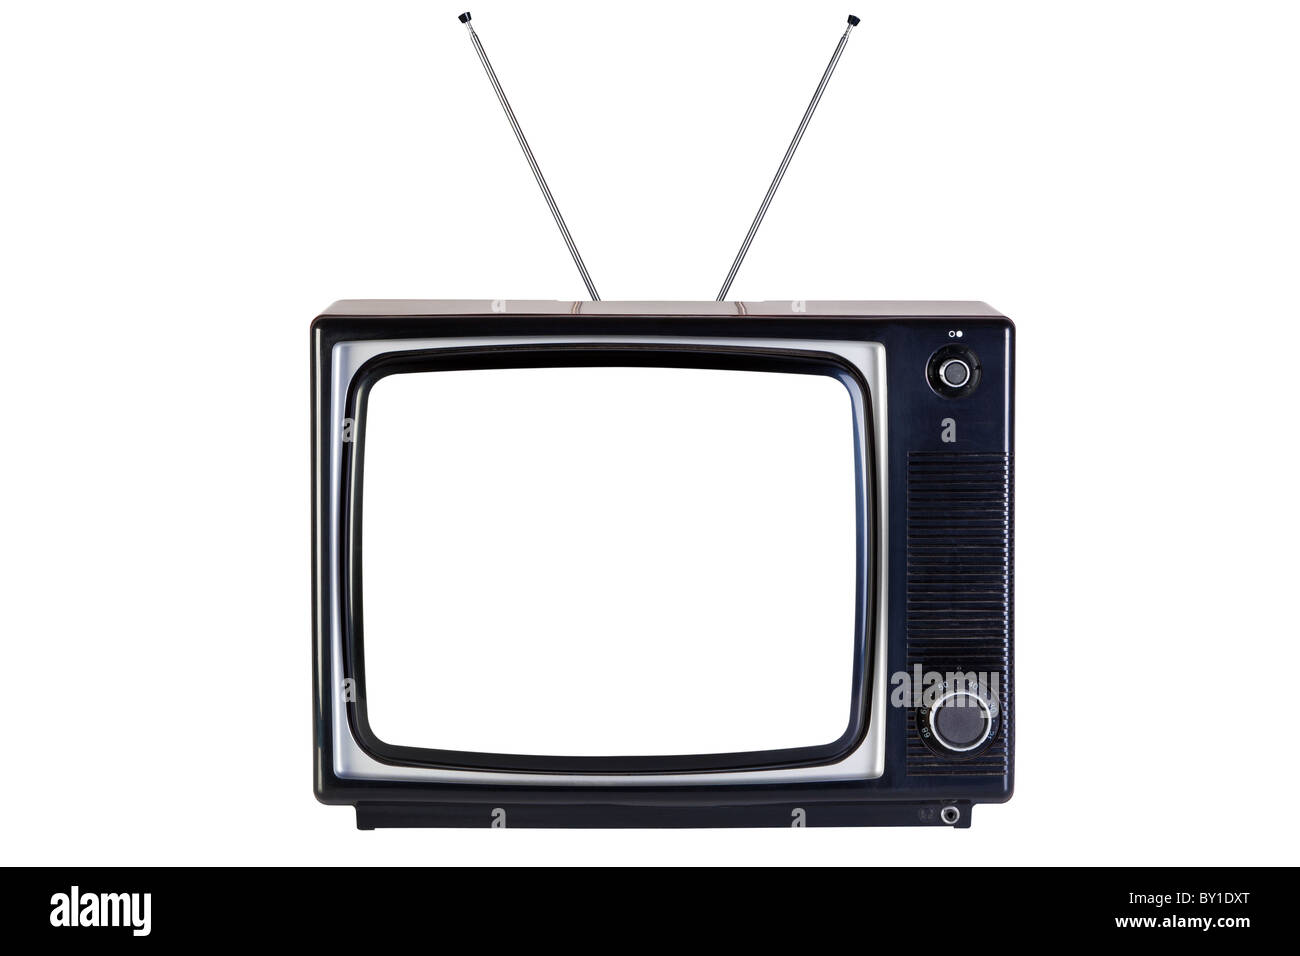 Old Retro Black And White Tv Set Isolated On A White Background